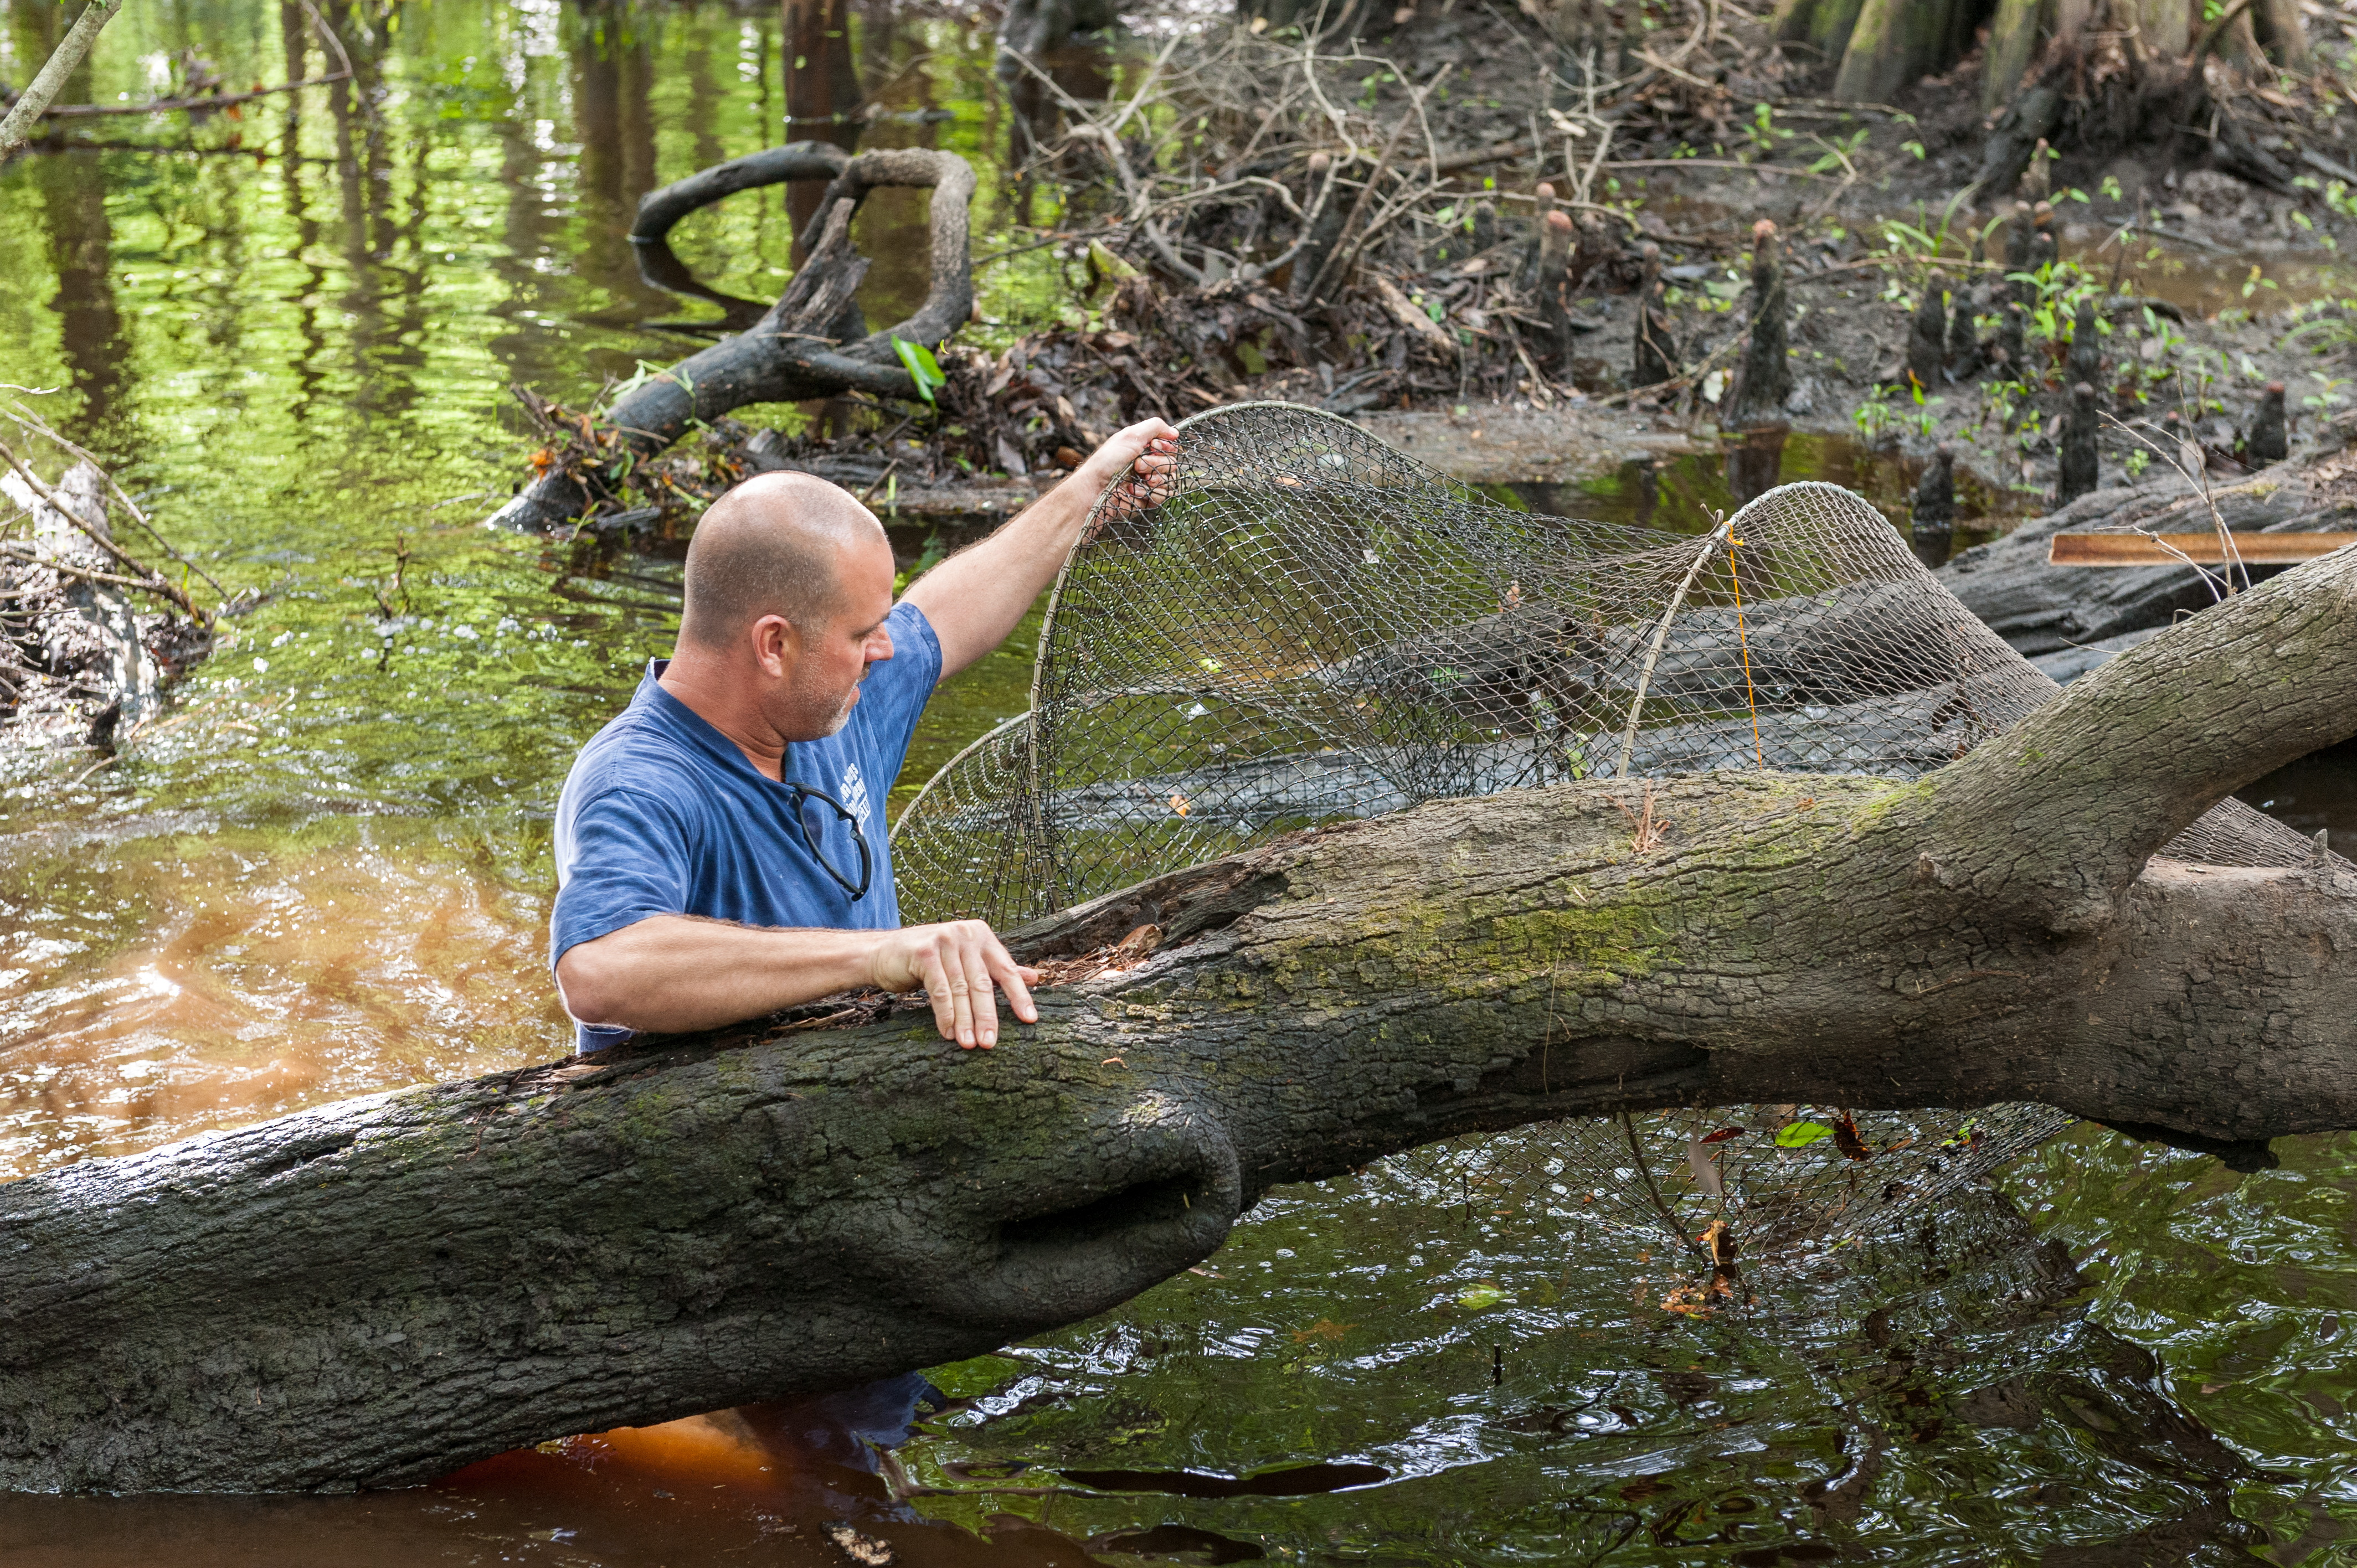 Brian Emanuel checks a trap for vertebrates and crayfish during a property biology survey